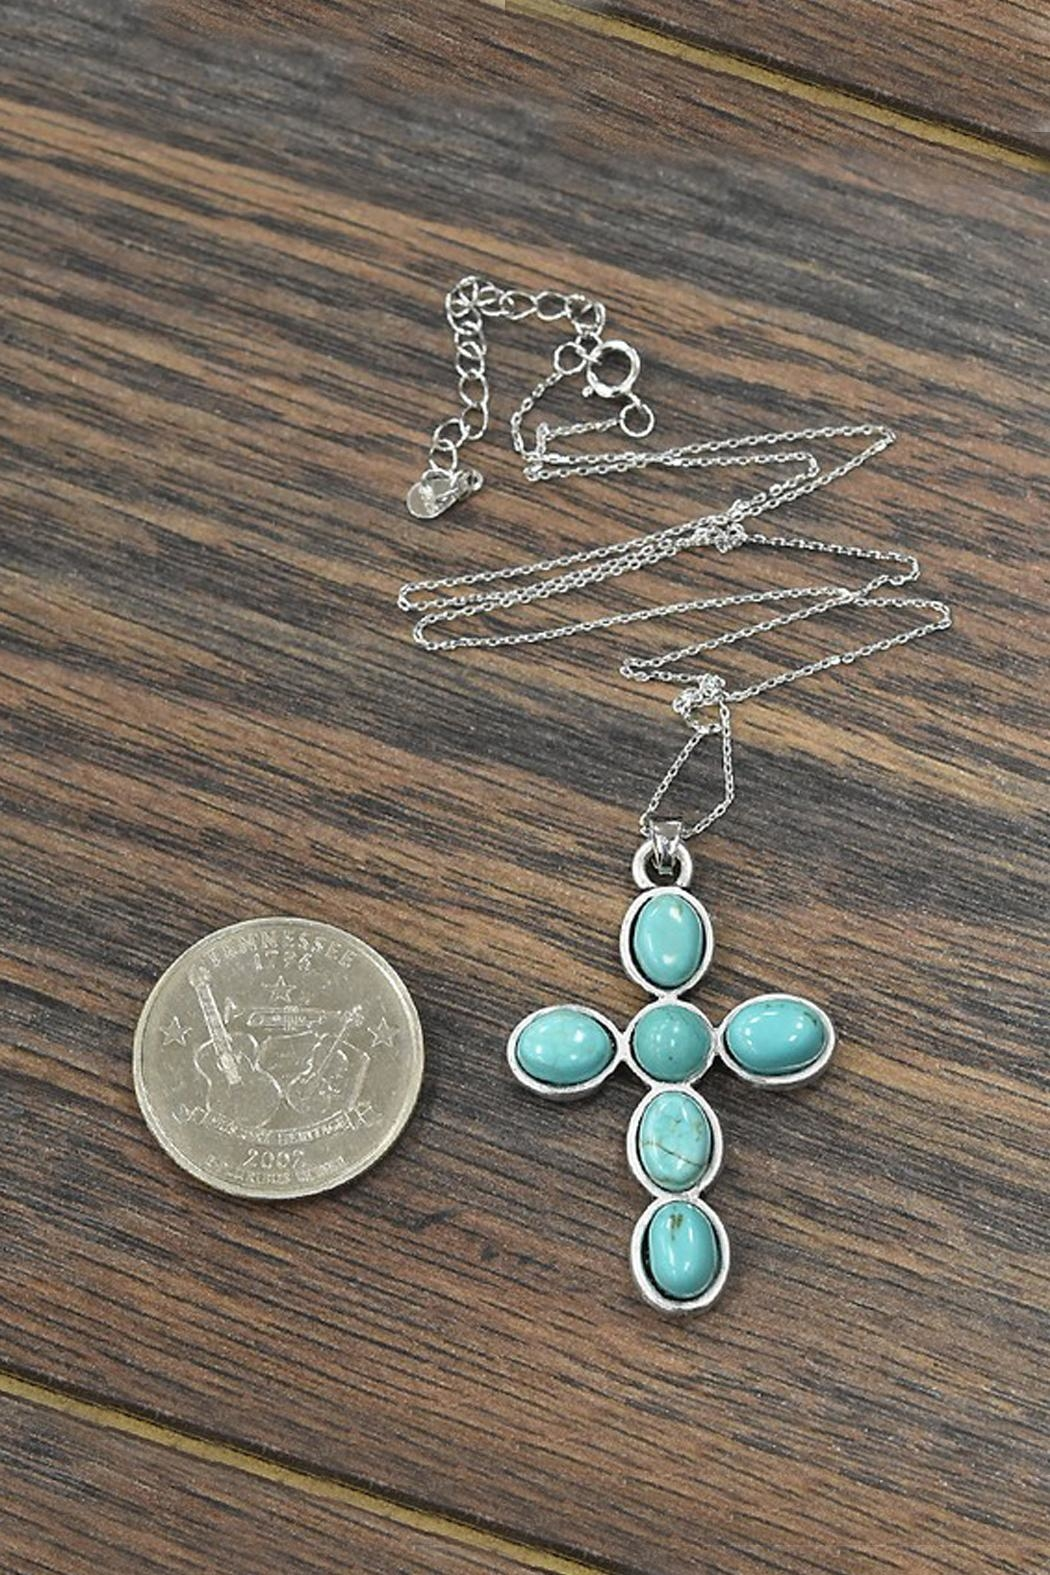 JChronicles Sterling-Silver-Chain-Necklace With Cross-Natural-Turquoise-Pendant - Side Cropped Image